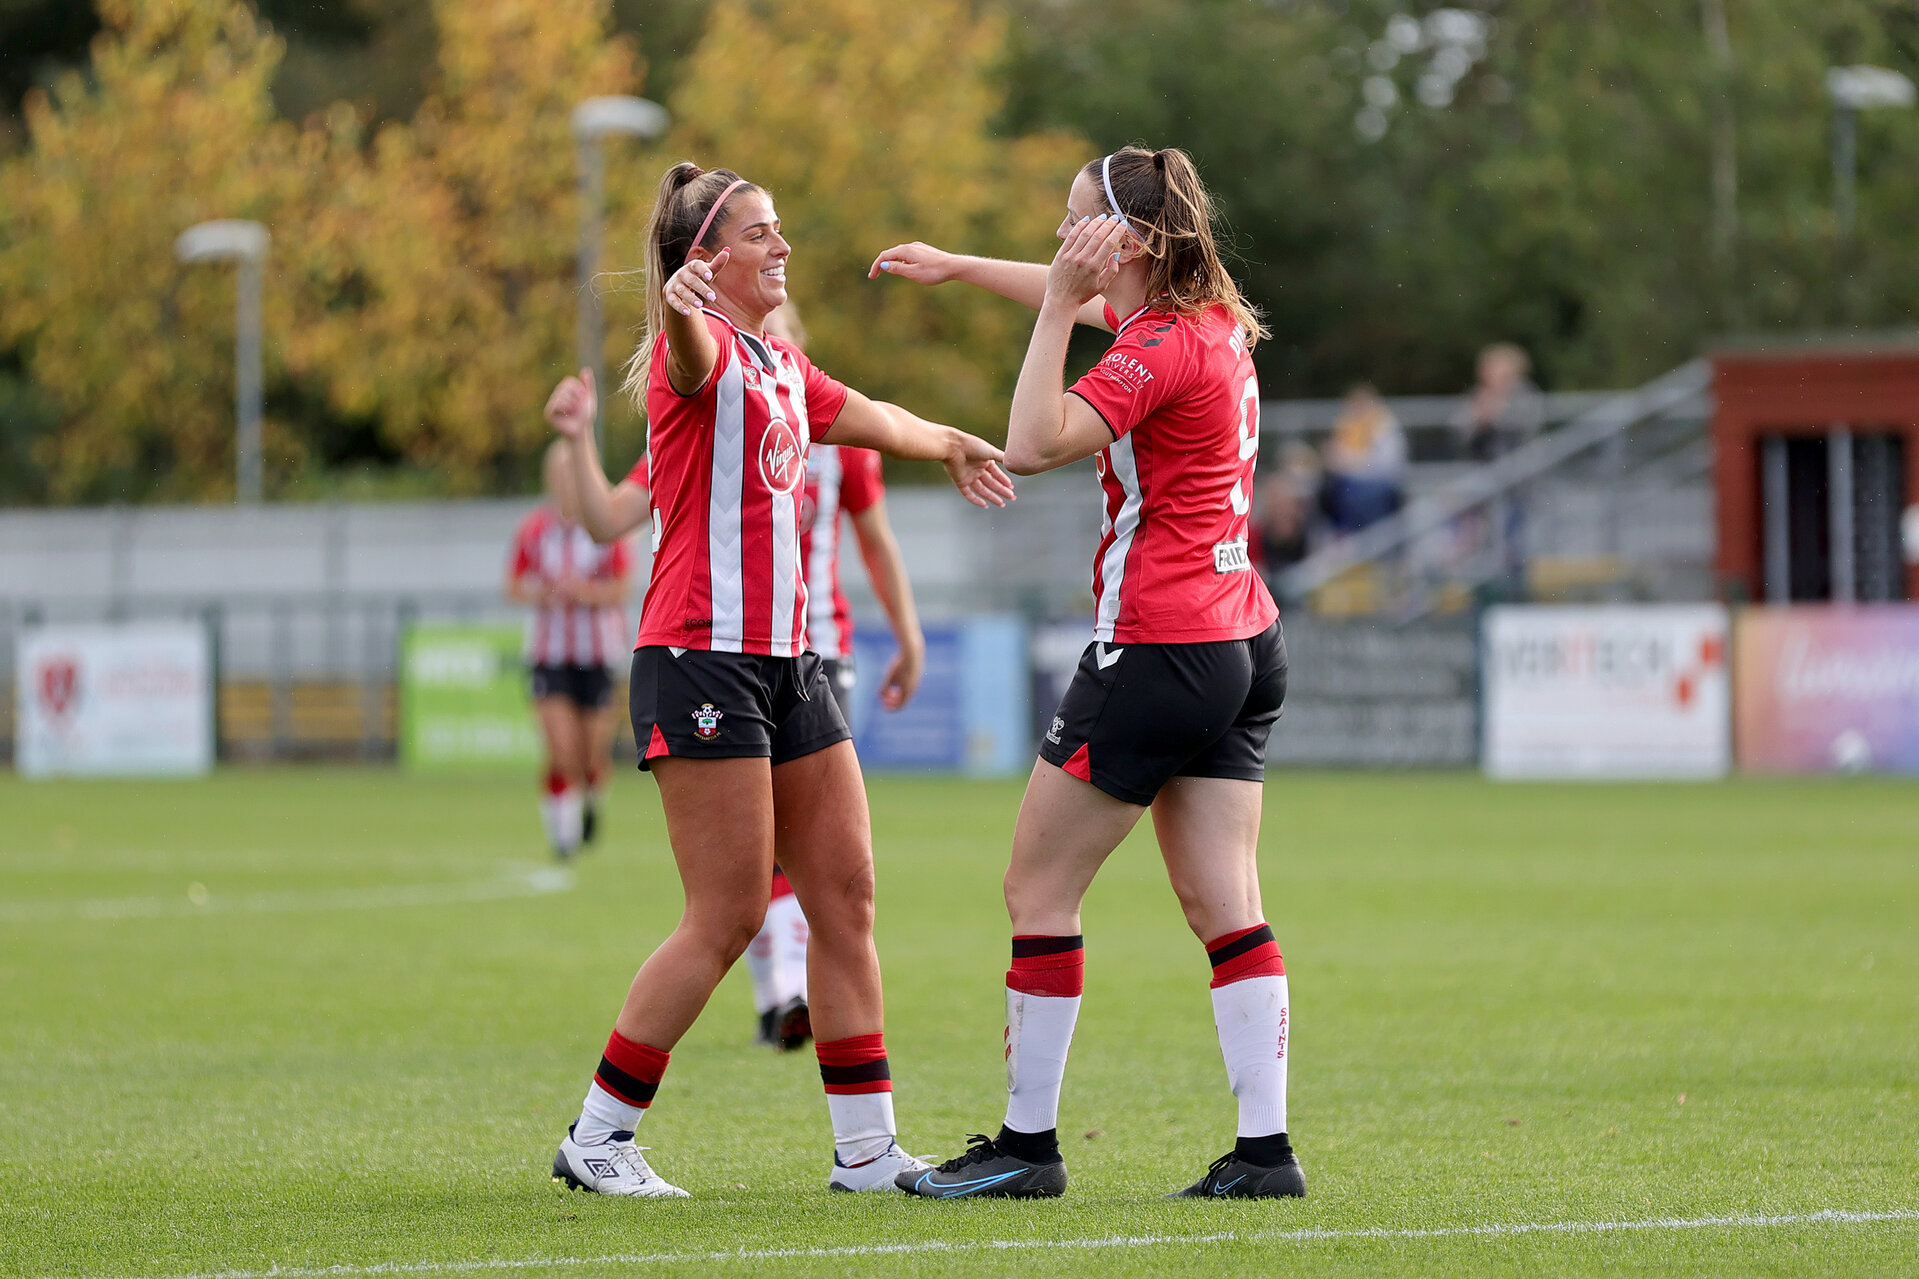 SOUTHAMPTON, ENGLAND - OCTOBER 03:  during the FA National League Southern Premier match between Southampton Women and Keynsham Town at The Snows Stadium on October 03, 2021 in Southampton, England. (Photo by Isabelle Field/Southampton FC via Getty Images)